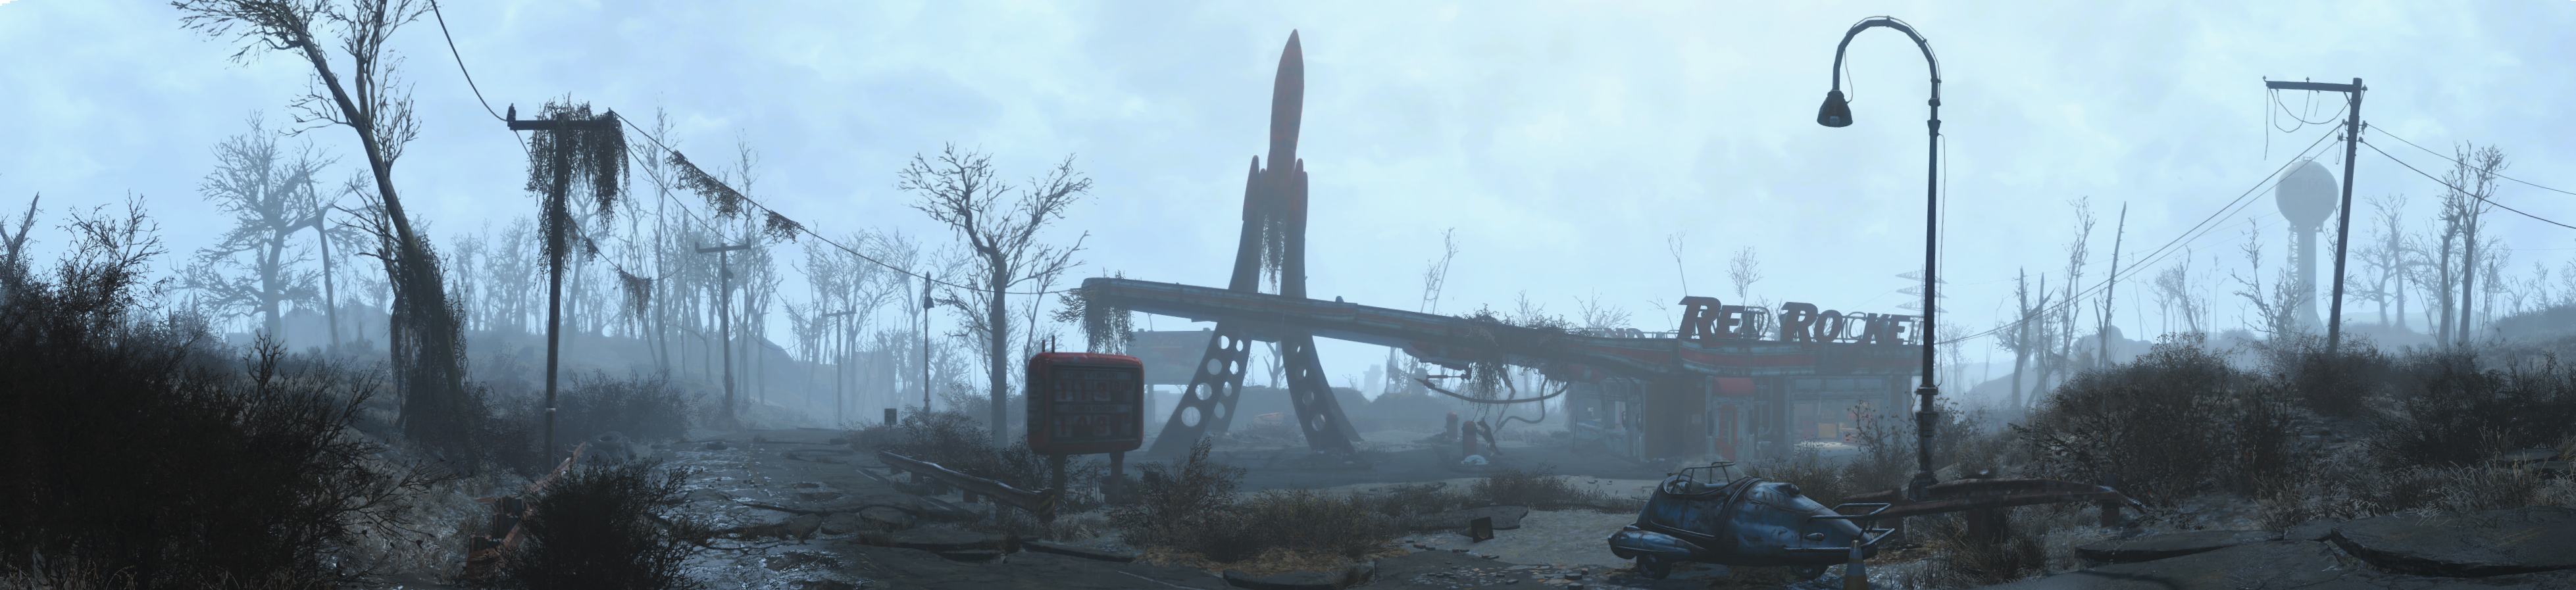 Fallout 4 team shows the amazing Graphics Technology ...